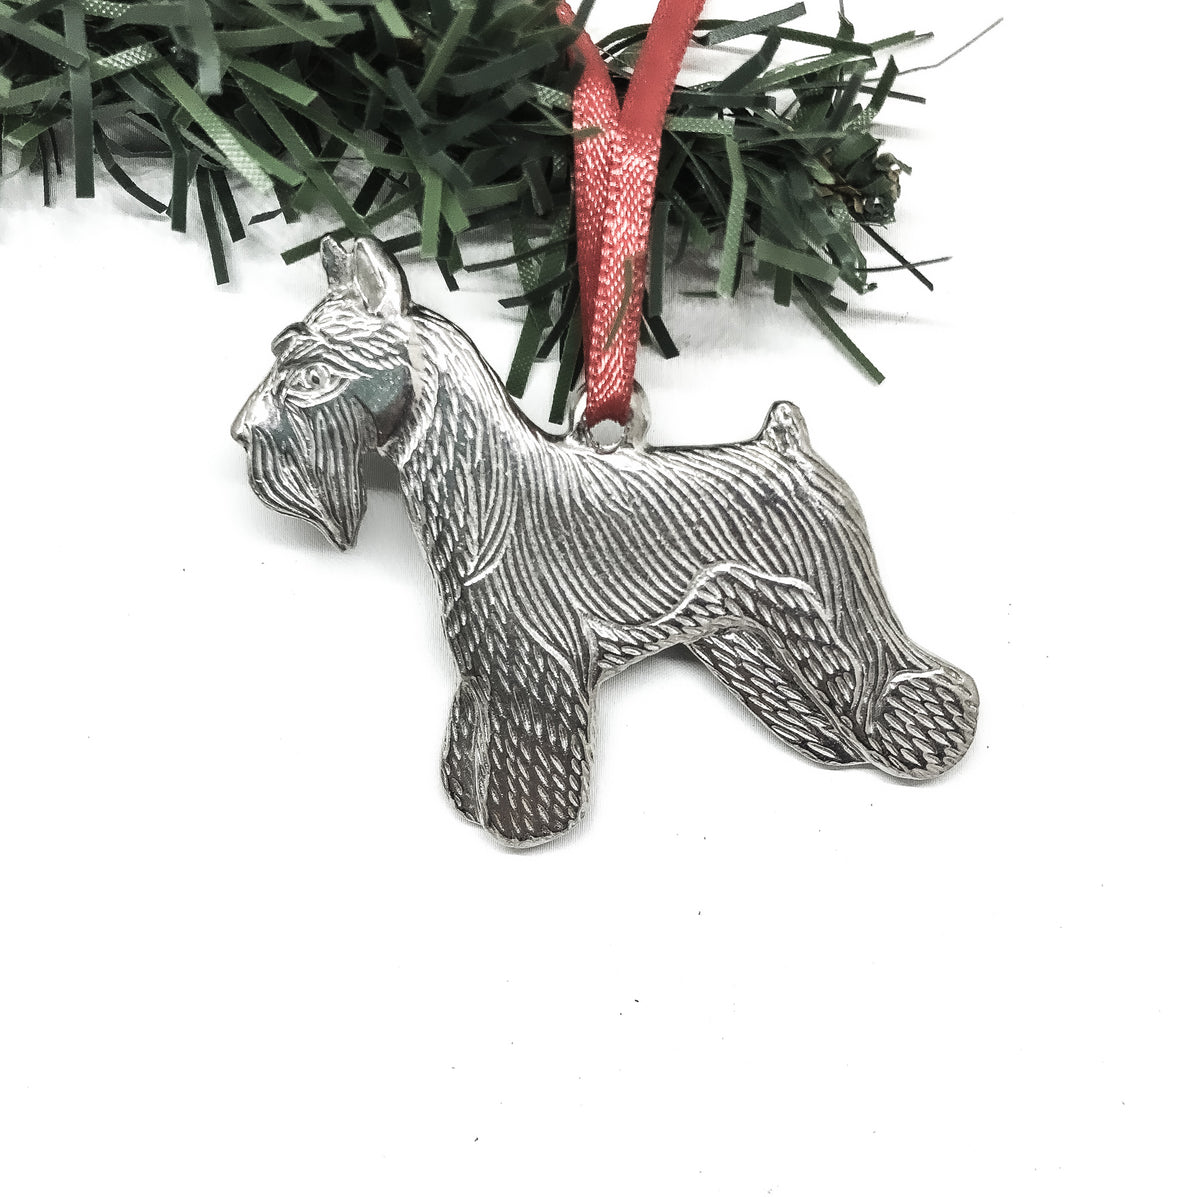 USA Handcrafted Schnauzer Dog Memorial Holiday Keepsake Christmas Ornament Pewter